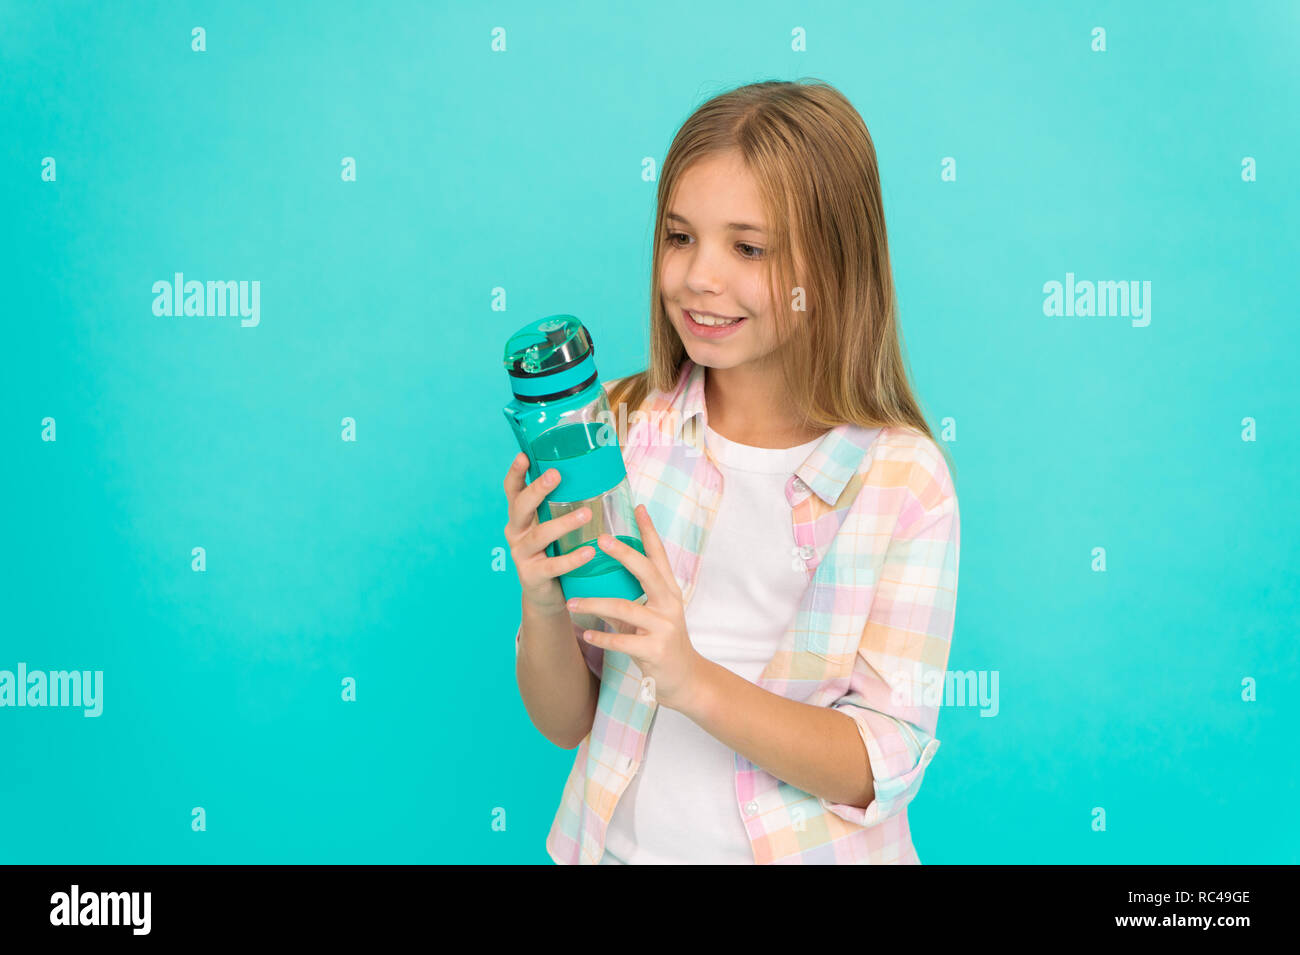 Kid hold bottle blue background. Child girl long hair has water bottle. Water balance concept. Healthy and hydrated. Pediatric disorders of water balance. Girl cares about health and water balance. - Stock Image